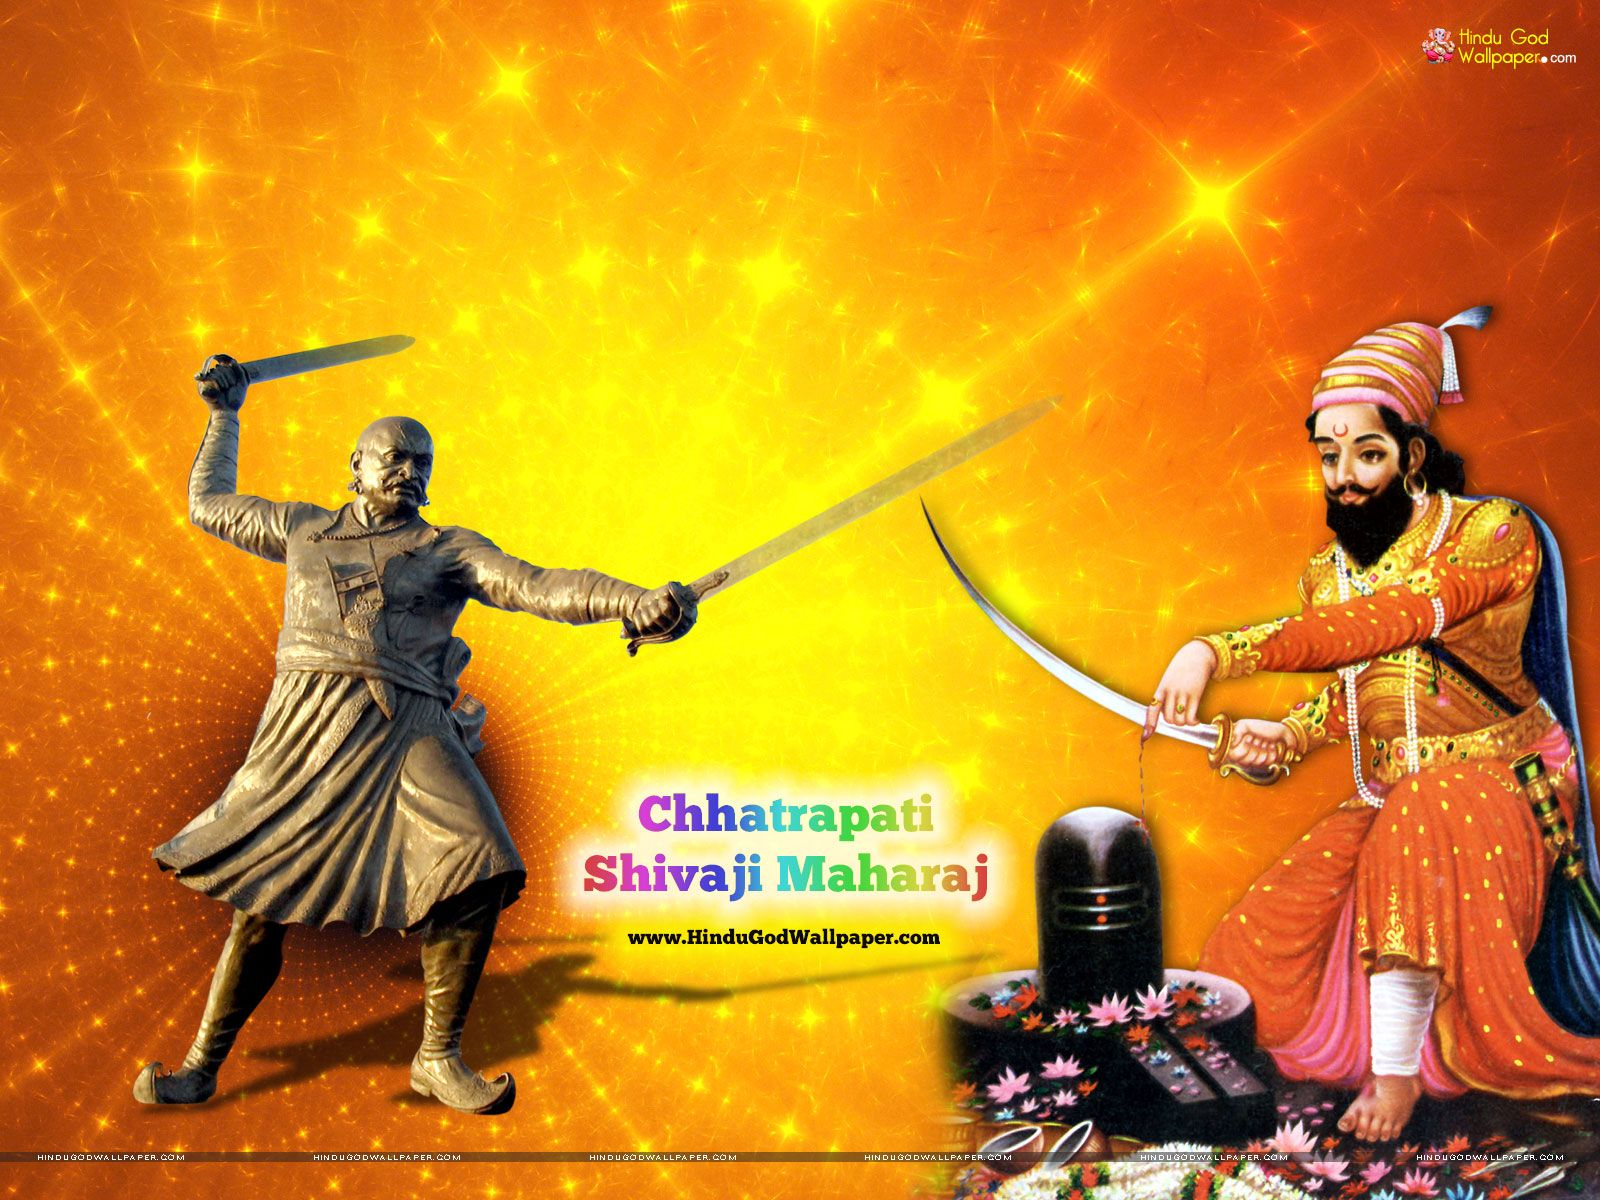 Shivaji Maharaj Photo Free Download: Shivaji Maharaj Wallpaper For Desktop Free Download